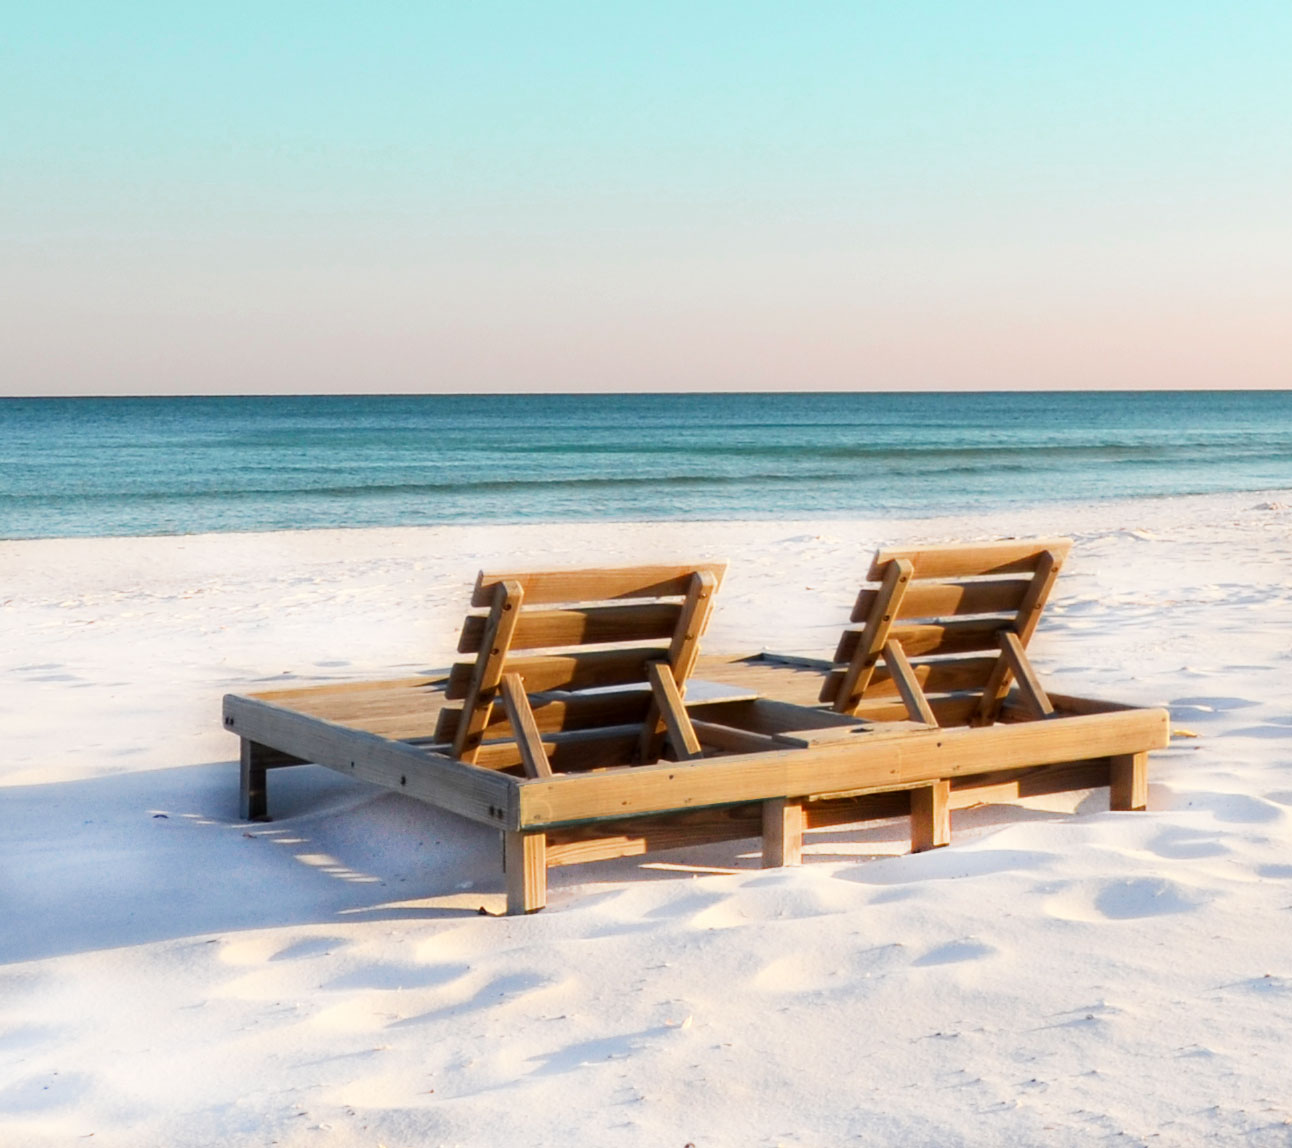 Vacation In Perdido Key Fl: Mom's Day Gift Alert: Florida Beach Vacation